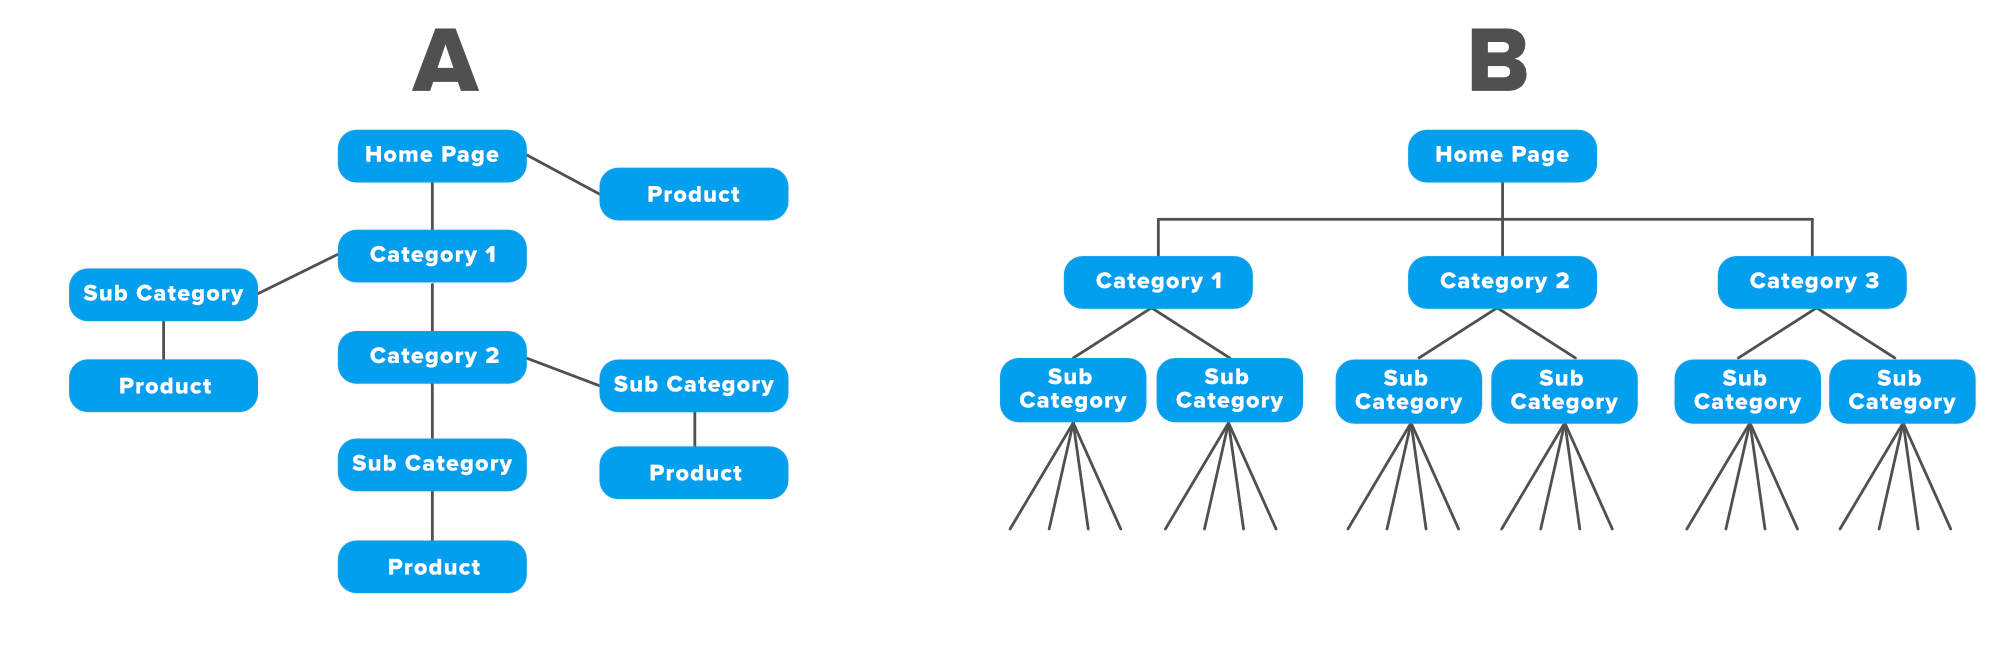 Establish-an-Easy-Site-Architecture-For-a-Ecommerce-Website